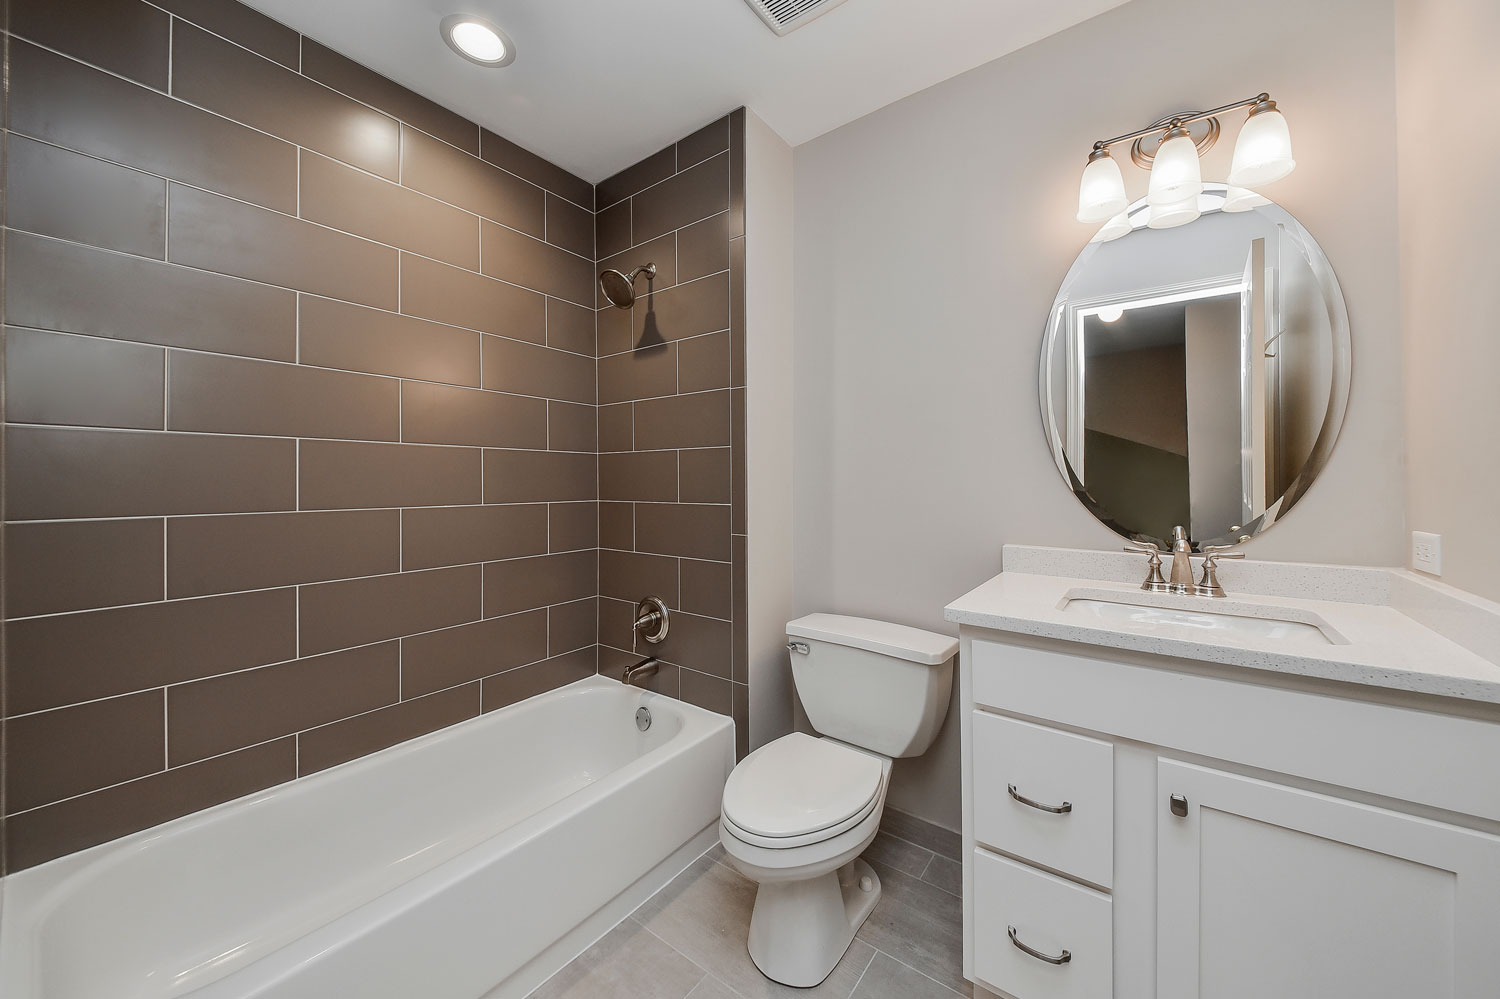 Charles Cindys Hall Bathroom Remodel Pictures Home Remodeling - Is a bathroom remodel worth it